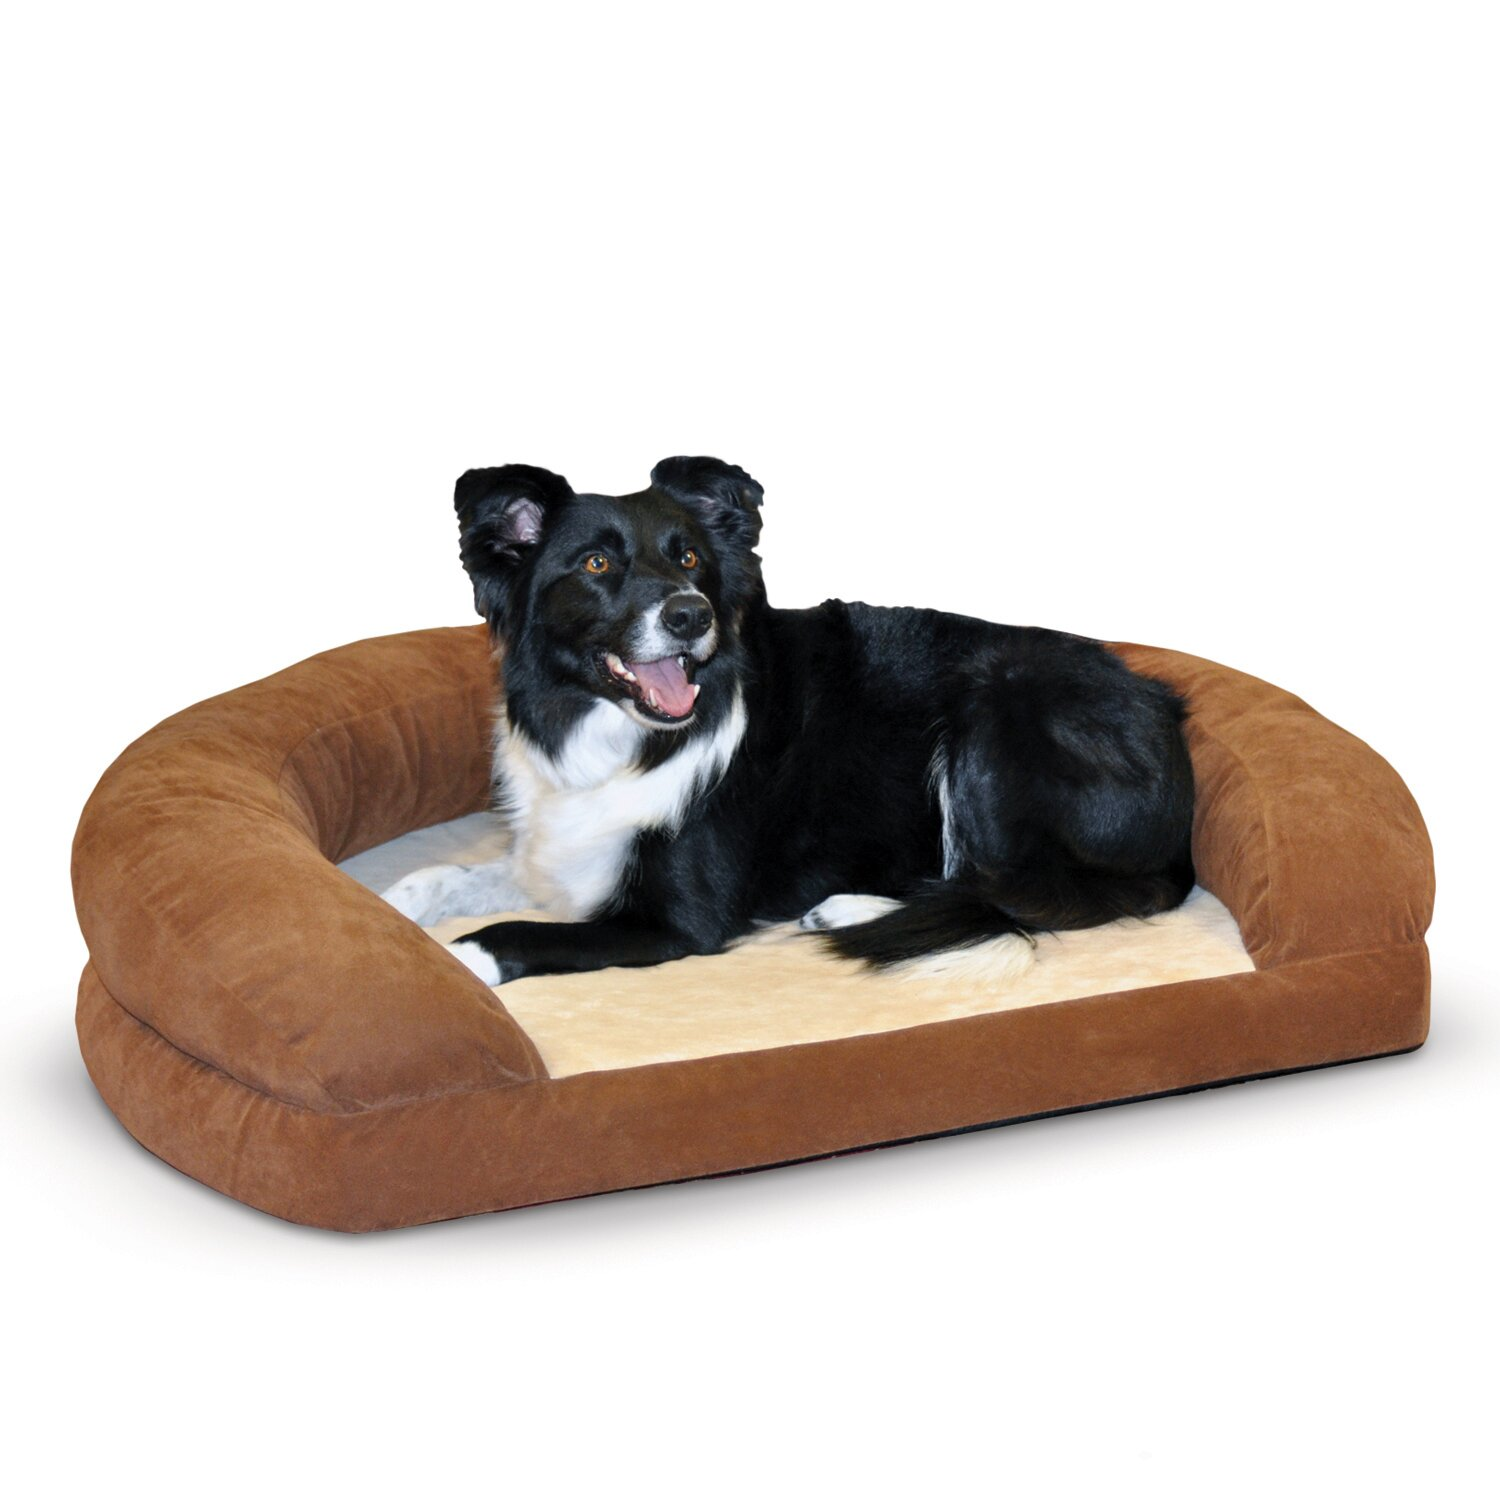 Orthopedic Dog Bed With Bolster